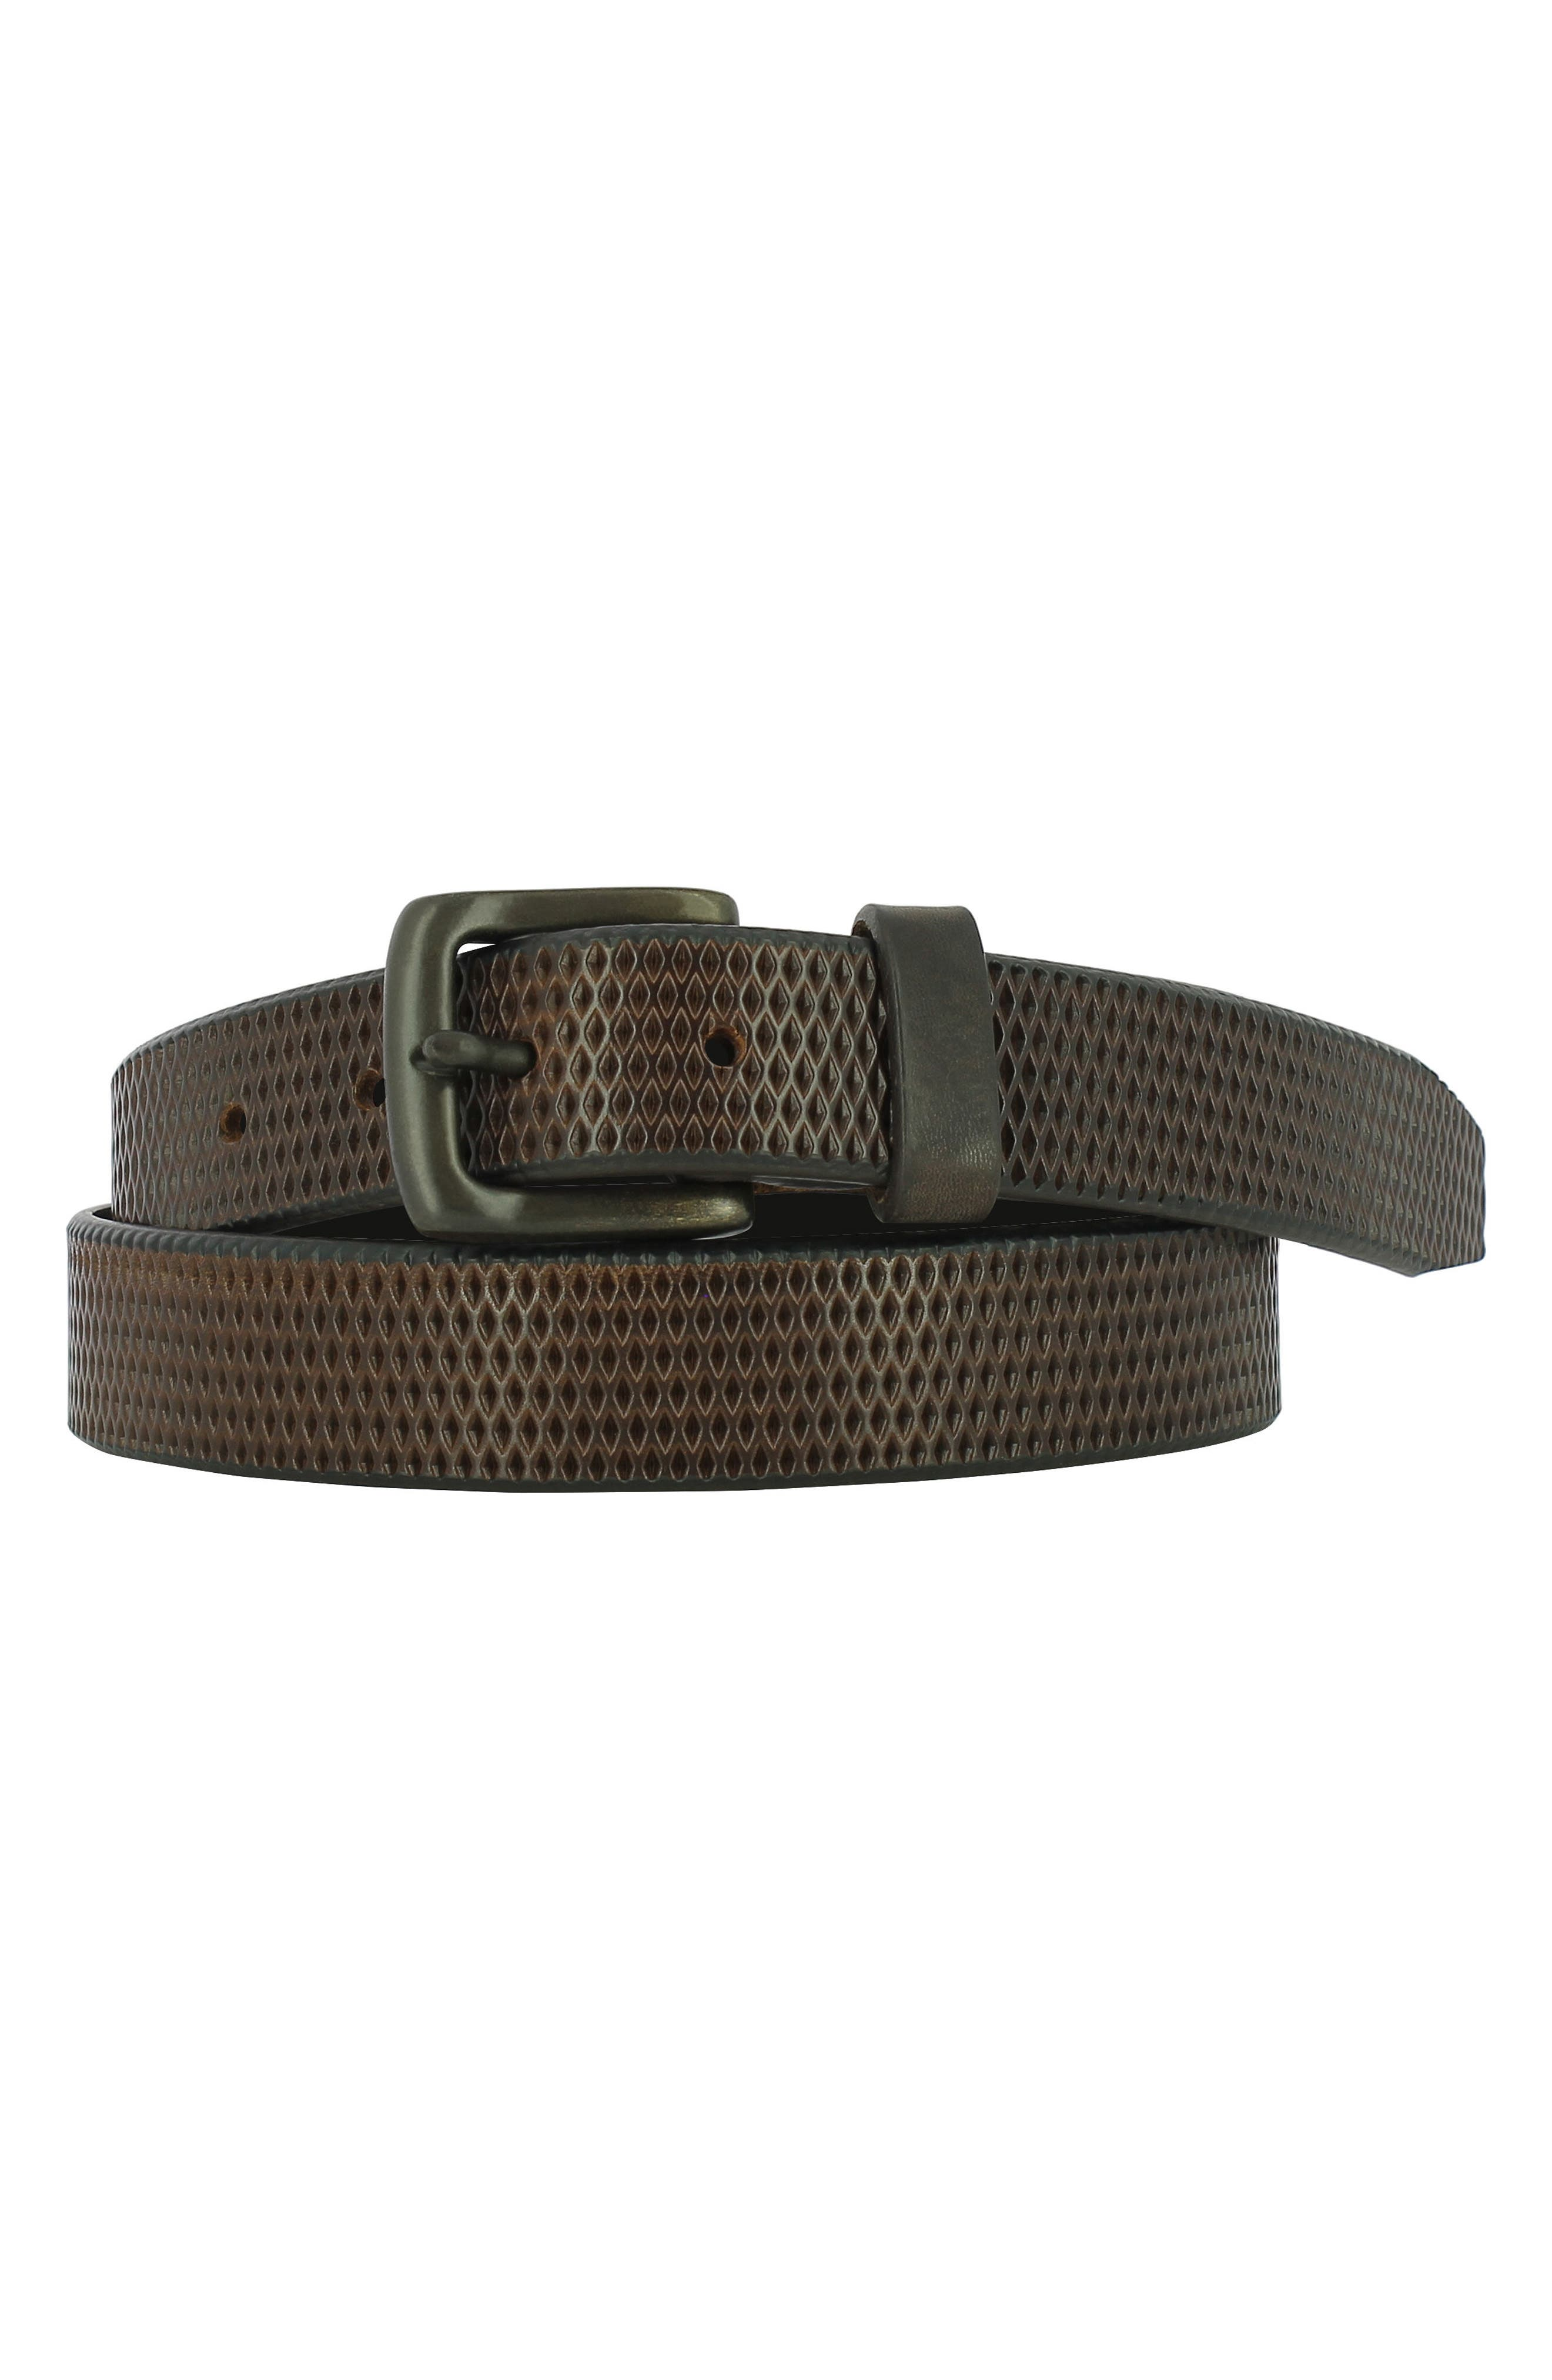 Valentino Leather Belt,                             Main thumbnail 1, color,                             Brown